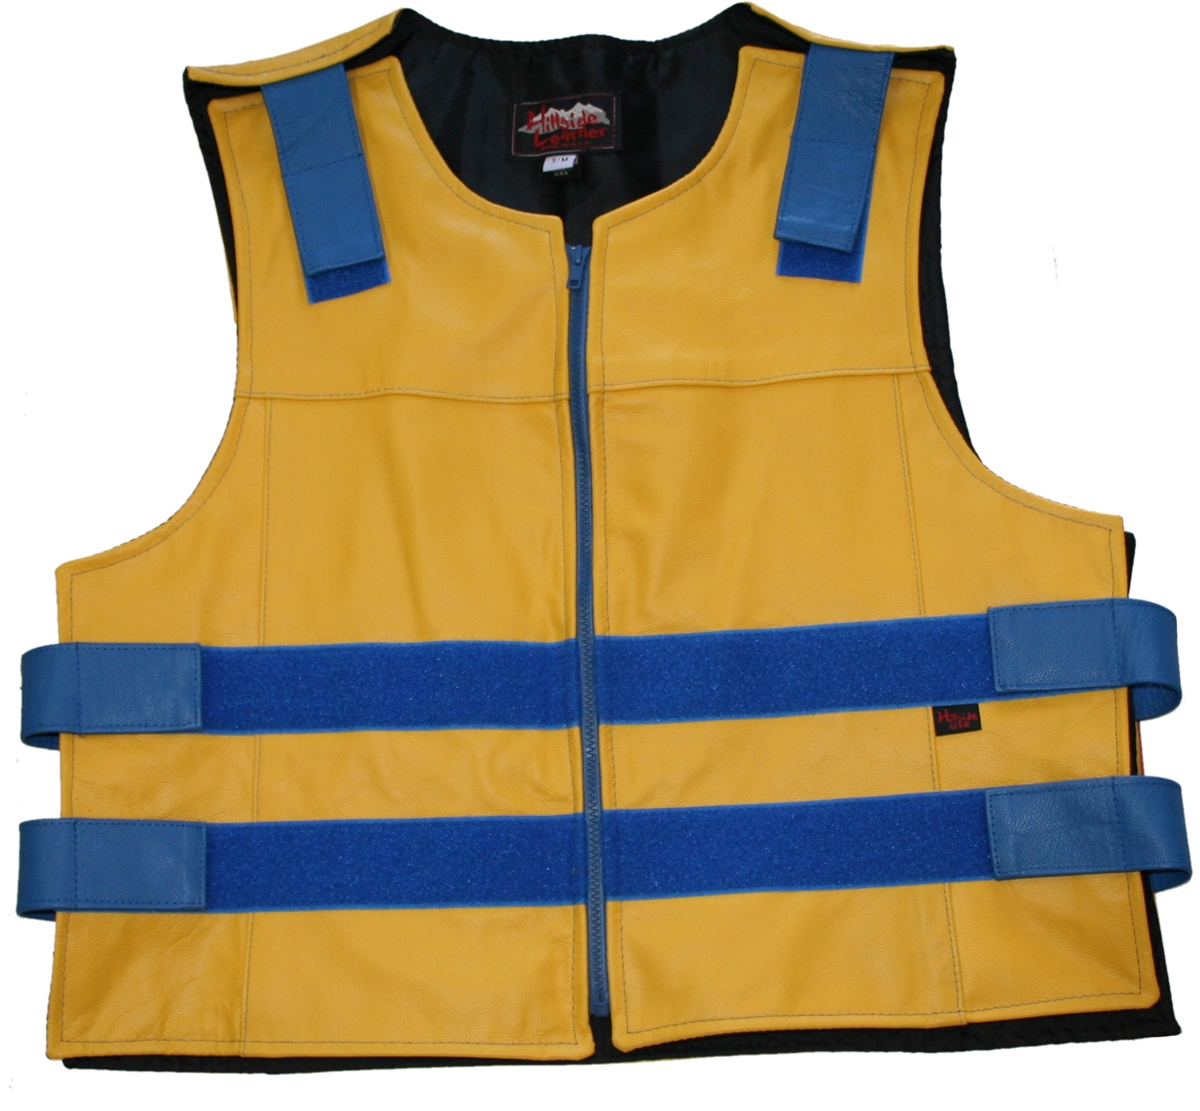 Men's Yellow Zippered Bulletproof Style Leather Vest. Offers the same quality as the Standard bulletproof style model, with a Front Zipper, adding the Functionality and quality that only Hillside USA can offer. Hand-crafted with durable Full-grain Cowhide